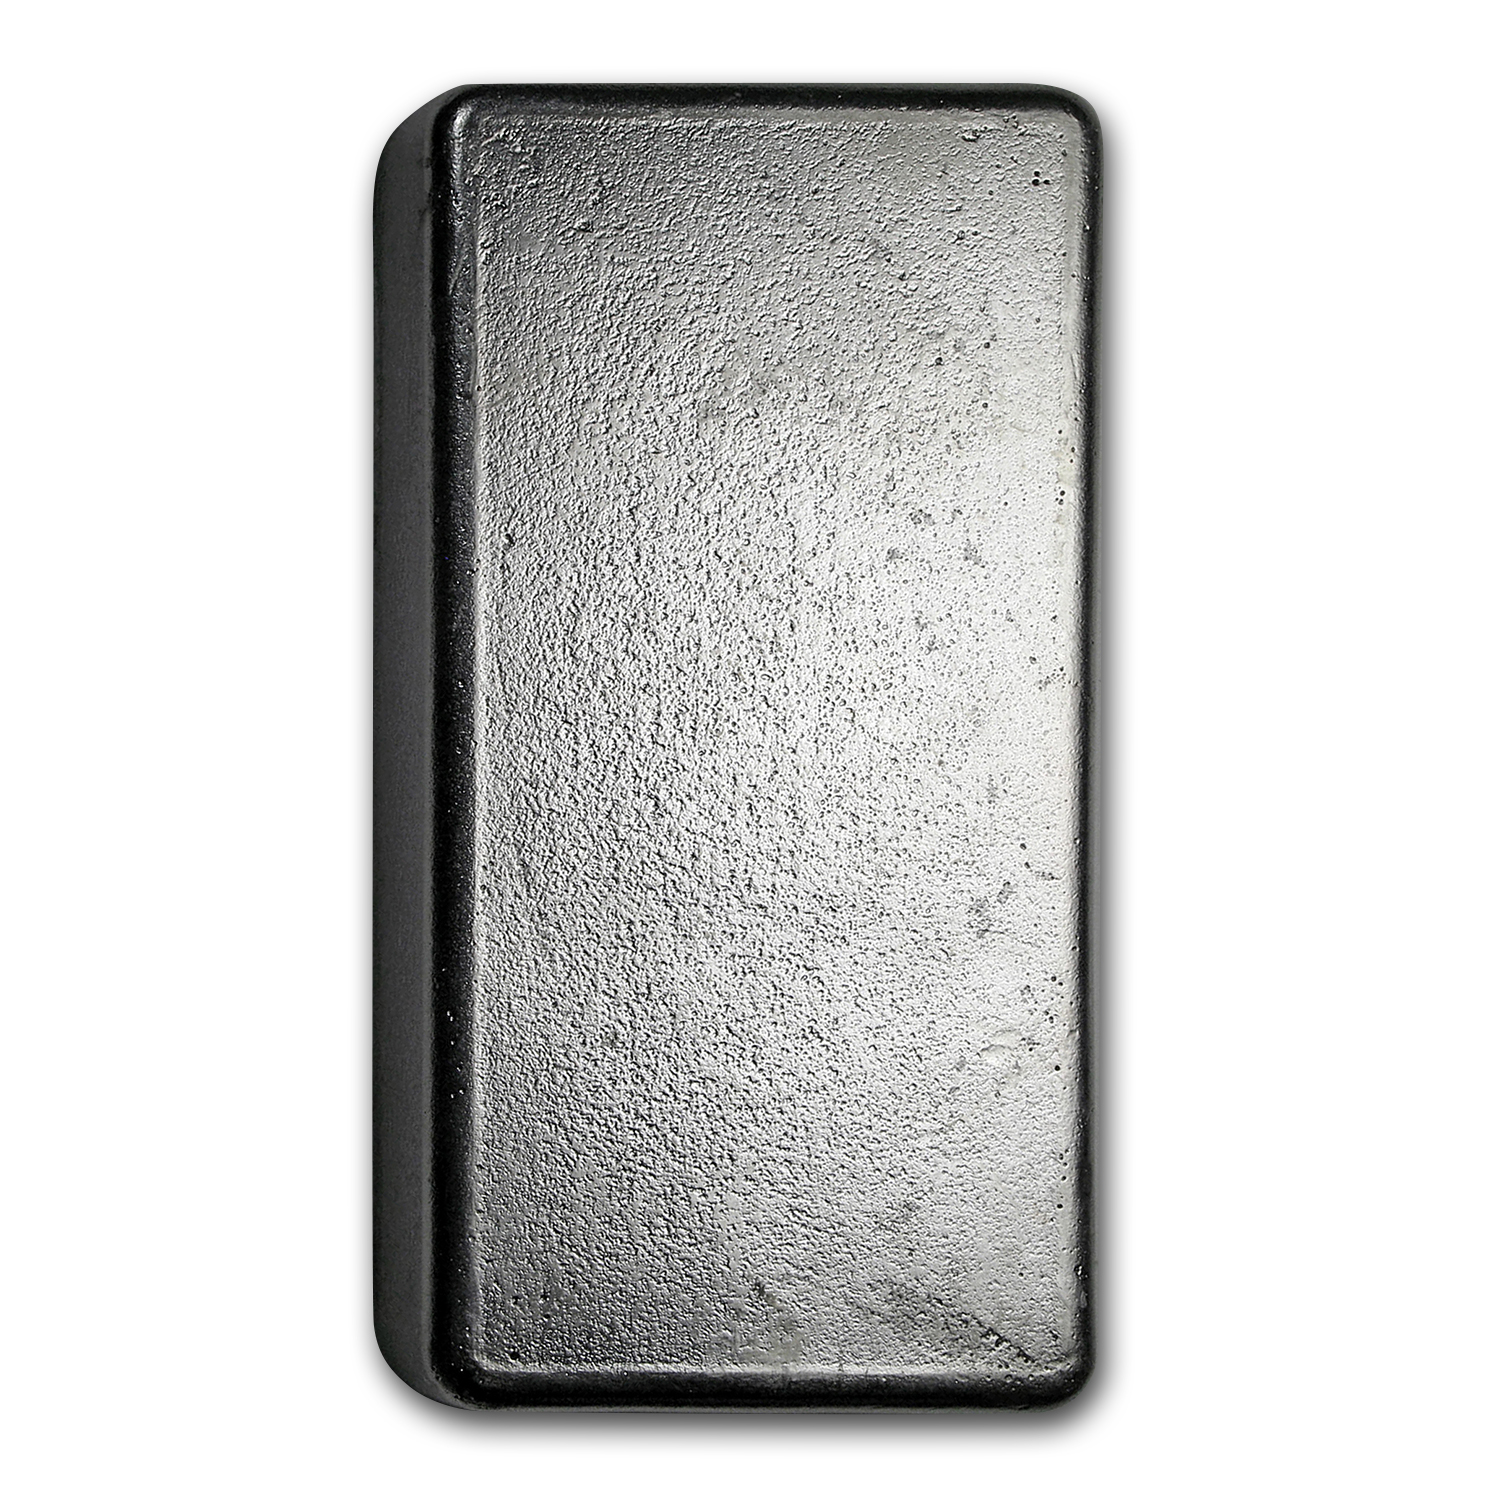 1 kilo Silver Bar - Perth Mint (Poured)